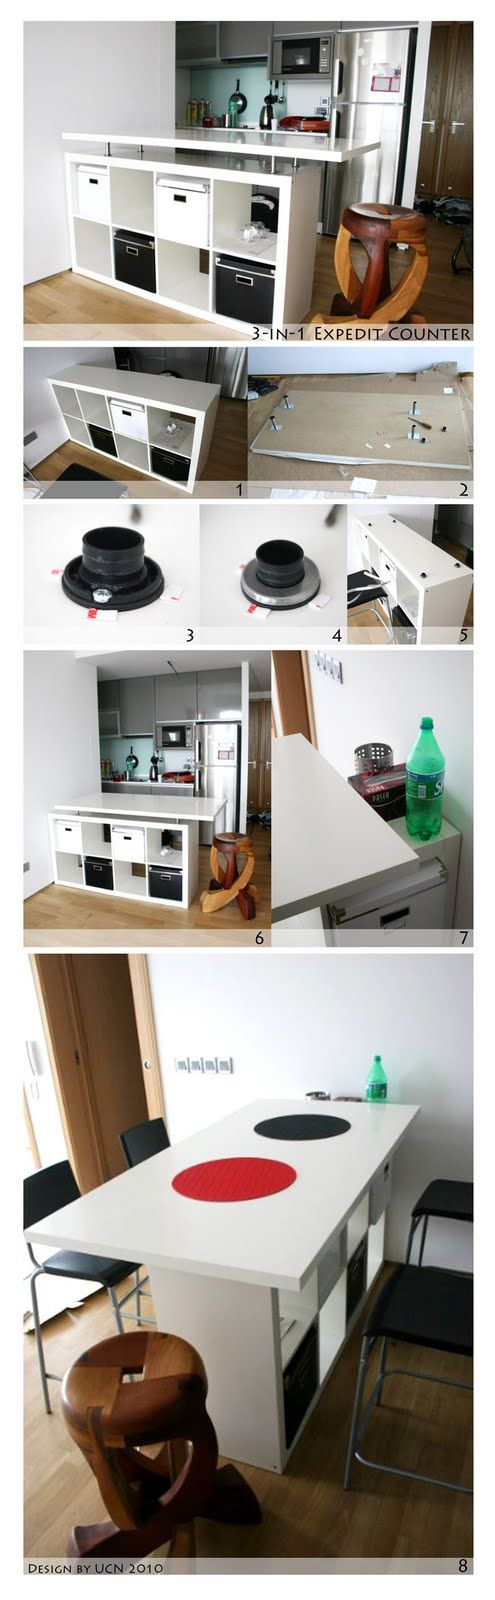 Ikea Hacks Küchentheke 3 In 1 Expedit Kitchen Counter Furniture Ikea Kitchen Ikea Hack